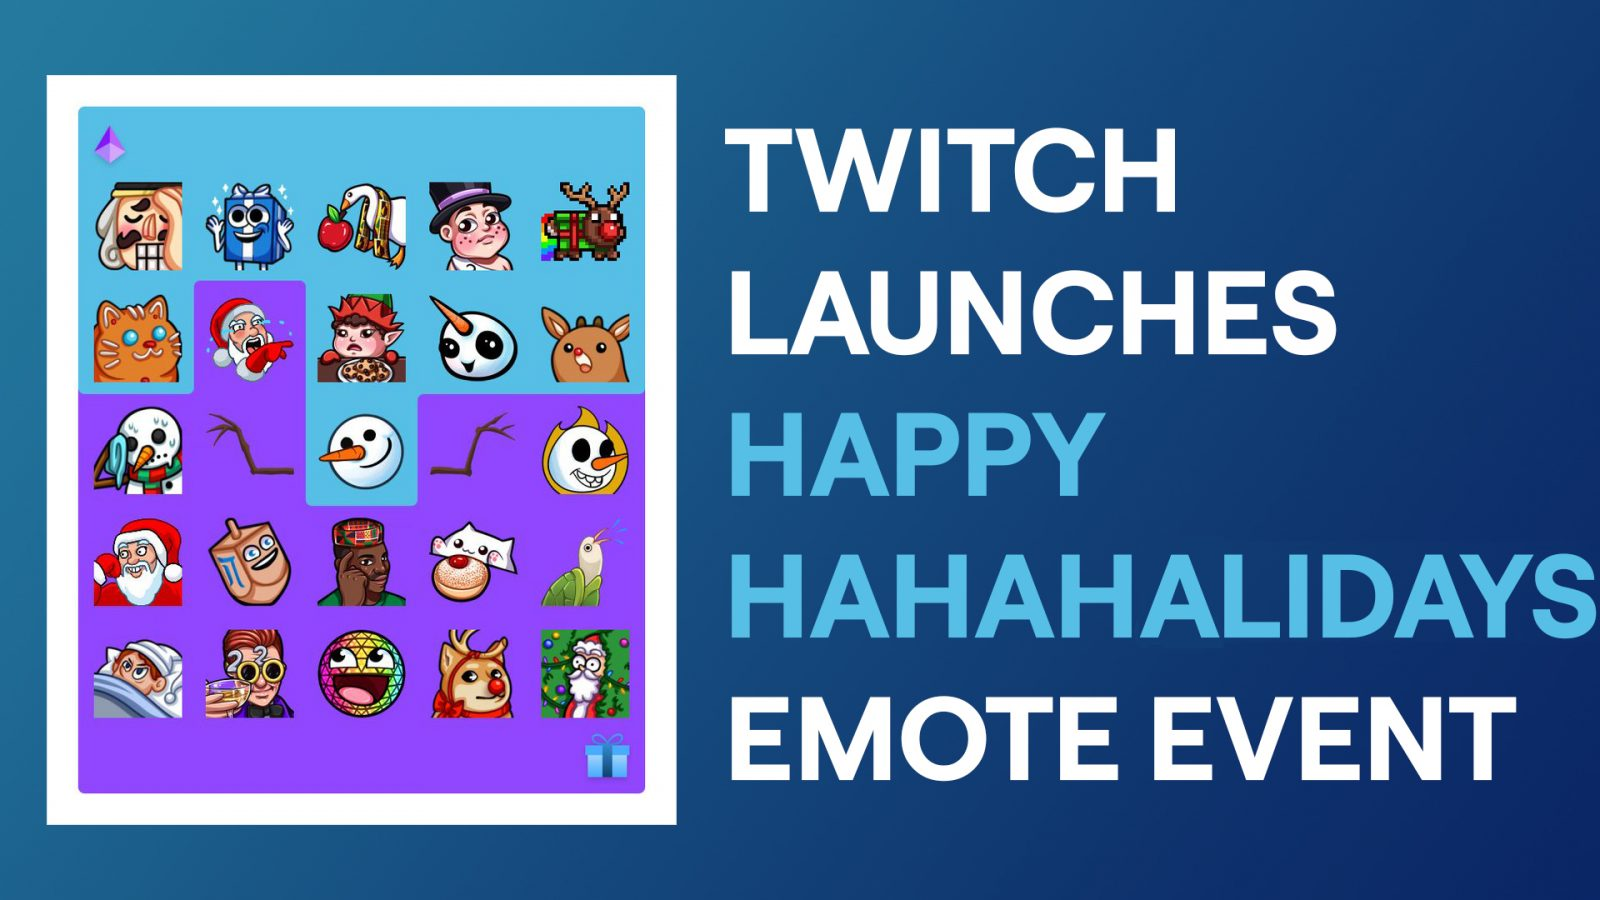 """Twitch Launches Holiday Emote Event """"HAHAHAlidays"""""""